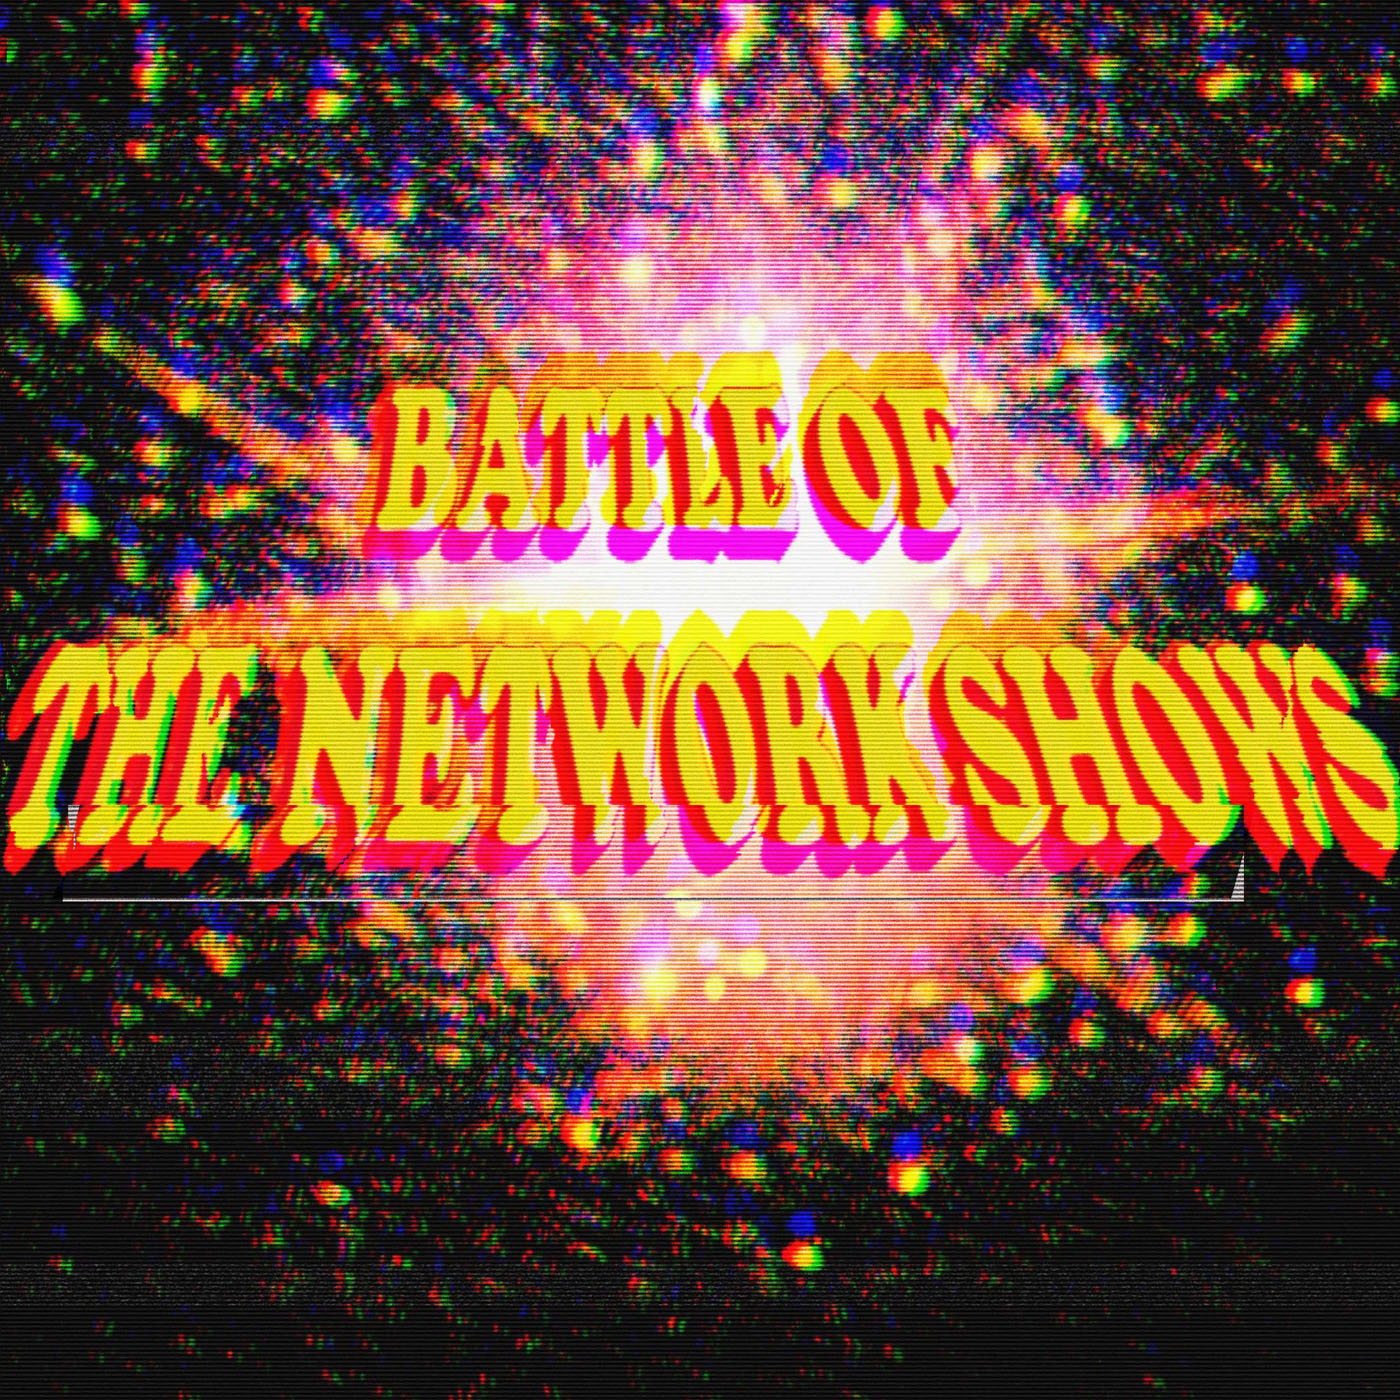 Battle of the Network Shows show art